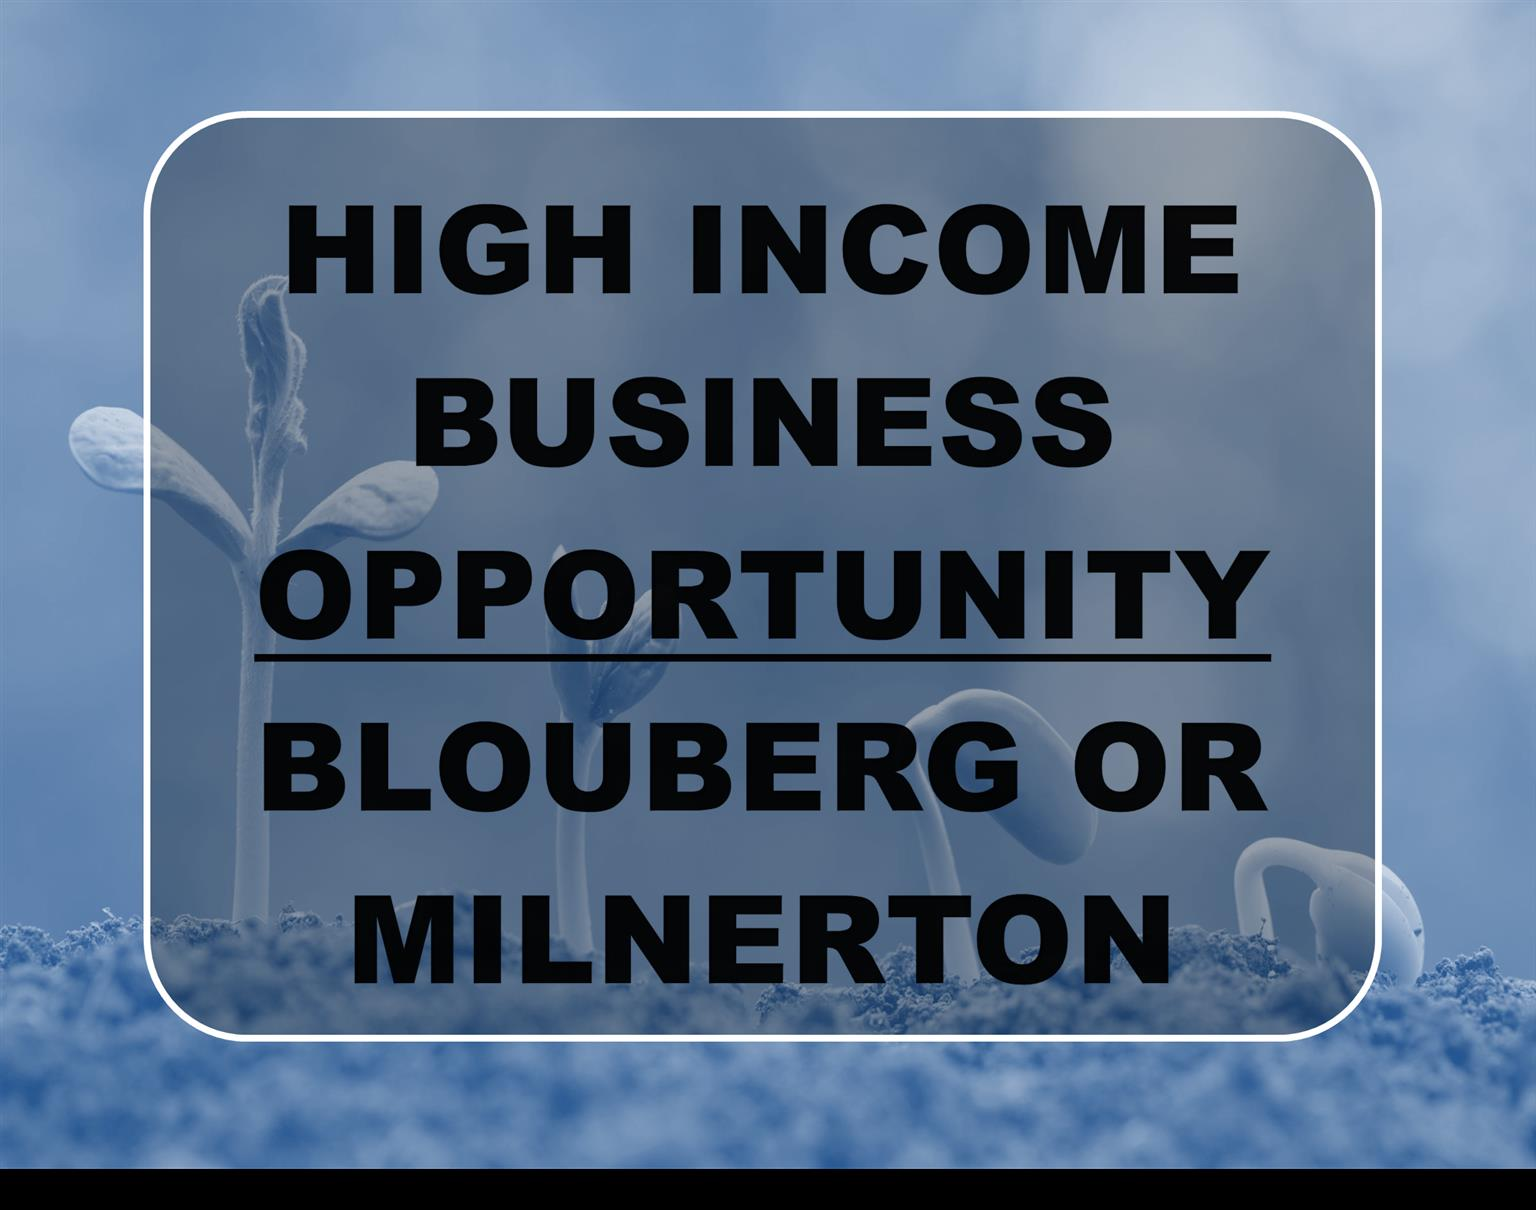 BLOUBERG OR MILNERTON - EXCEPTIONAL HIGH INCOME BUSINESS OPPORTUNITIES - DEPOSIT AND TERMS